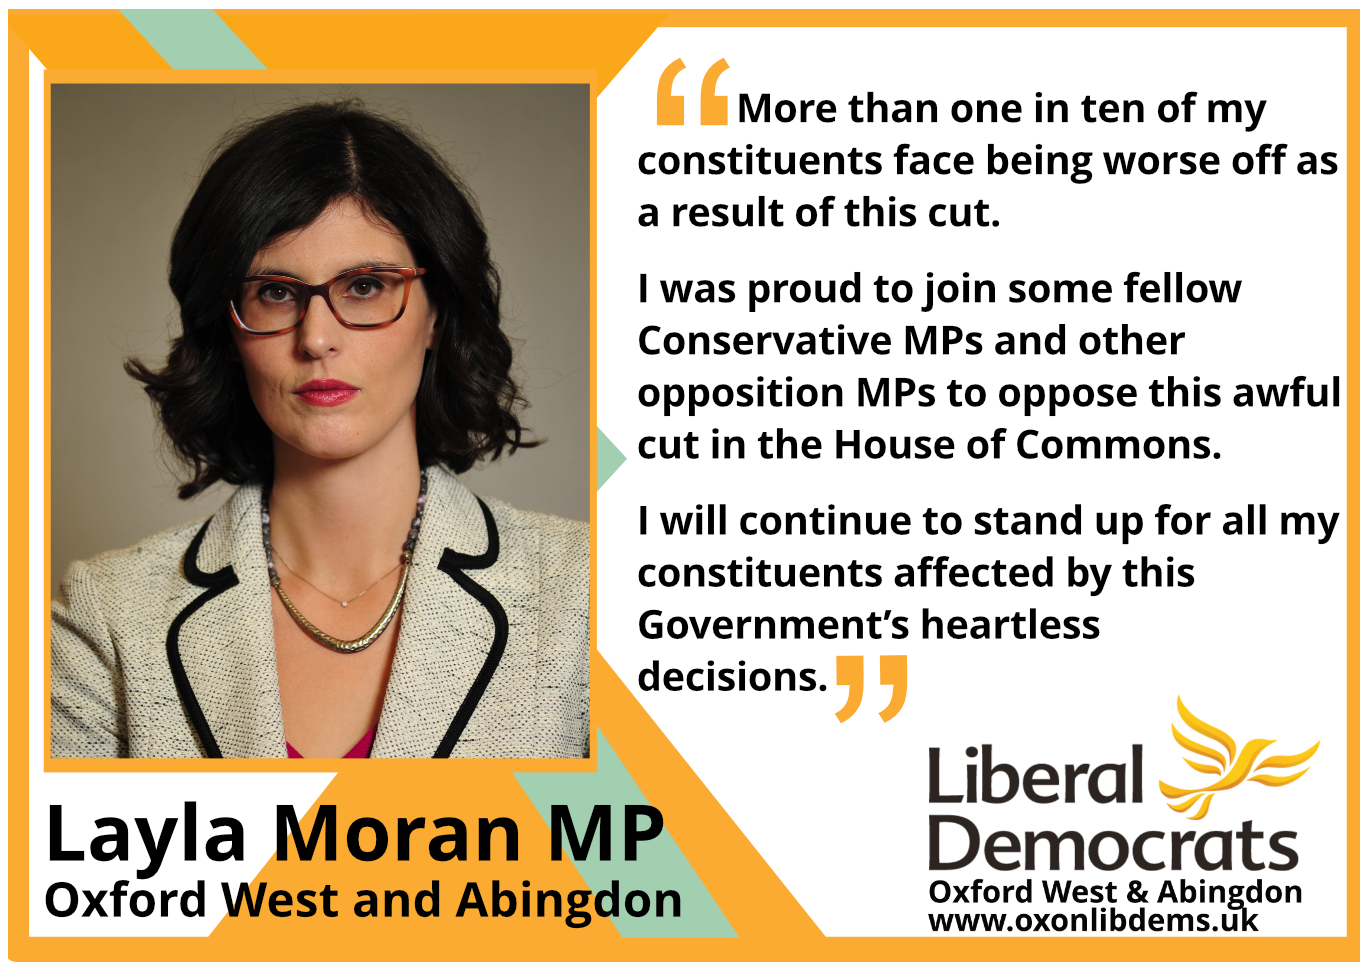 key_More than one in ten of my constituents face being worse off as a result of this cut. I was proud to join some fellow Conservative MPs and other opposition MPs to oppose this awful cut in the Commons this afternoon. I will continue to stand up for all my constituents affected by this Government's heartless decisions.